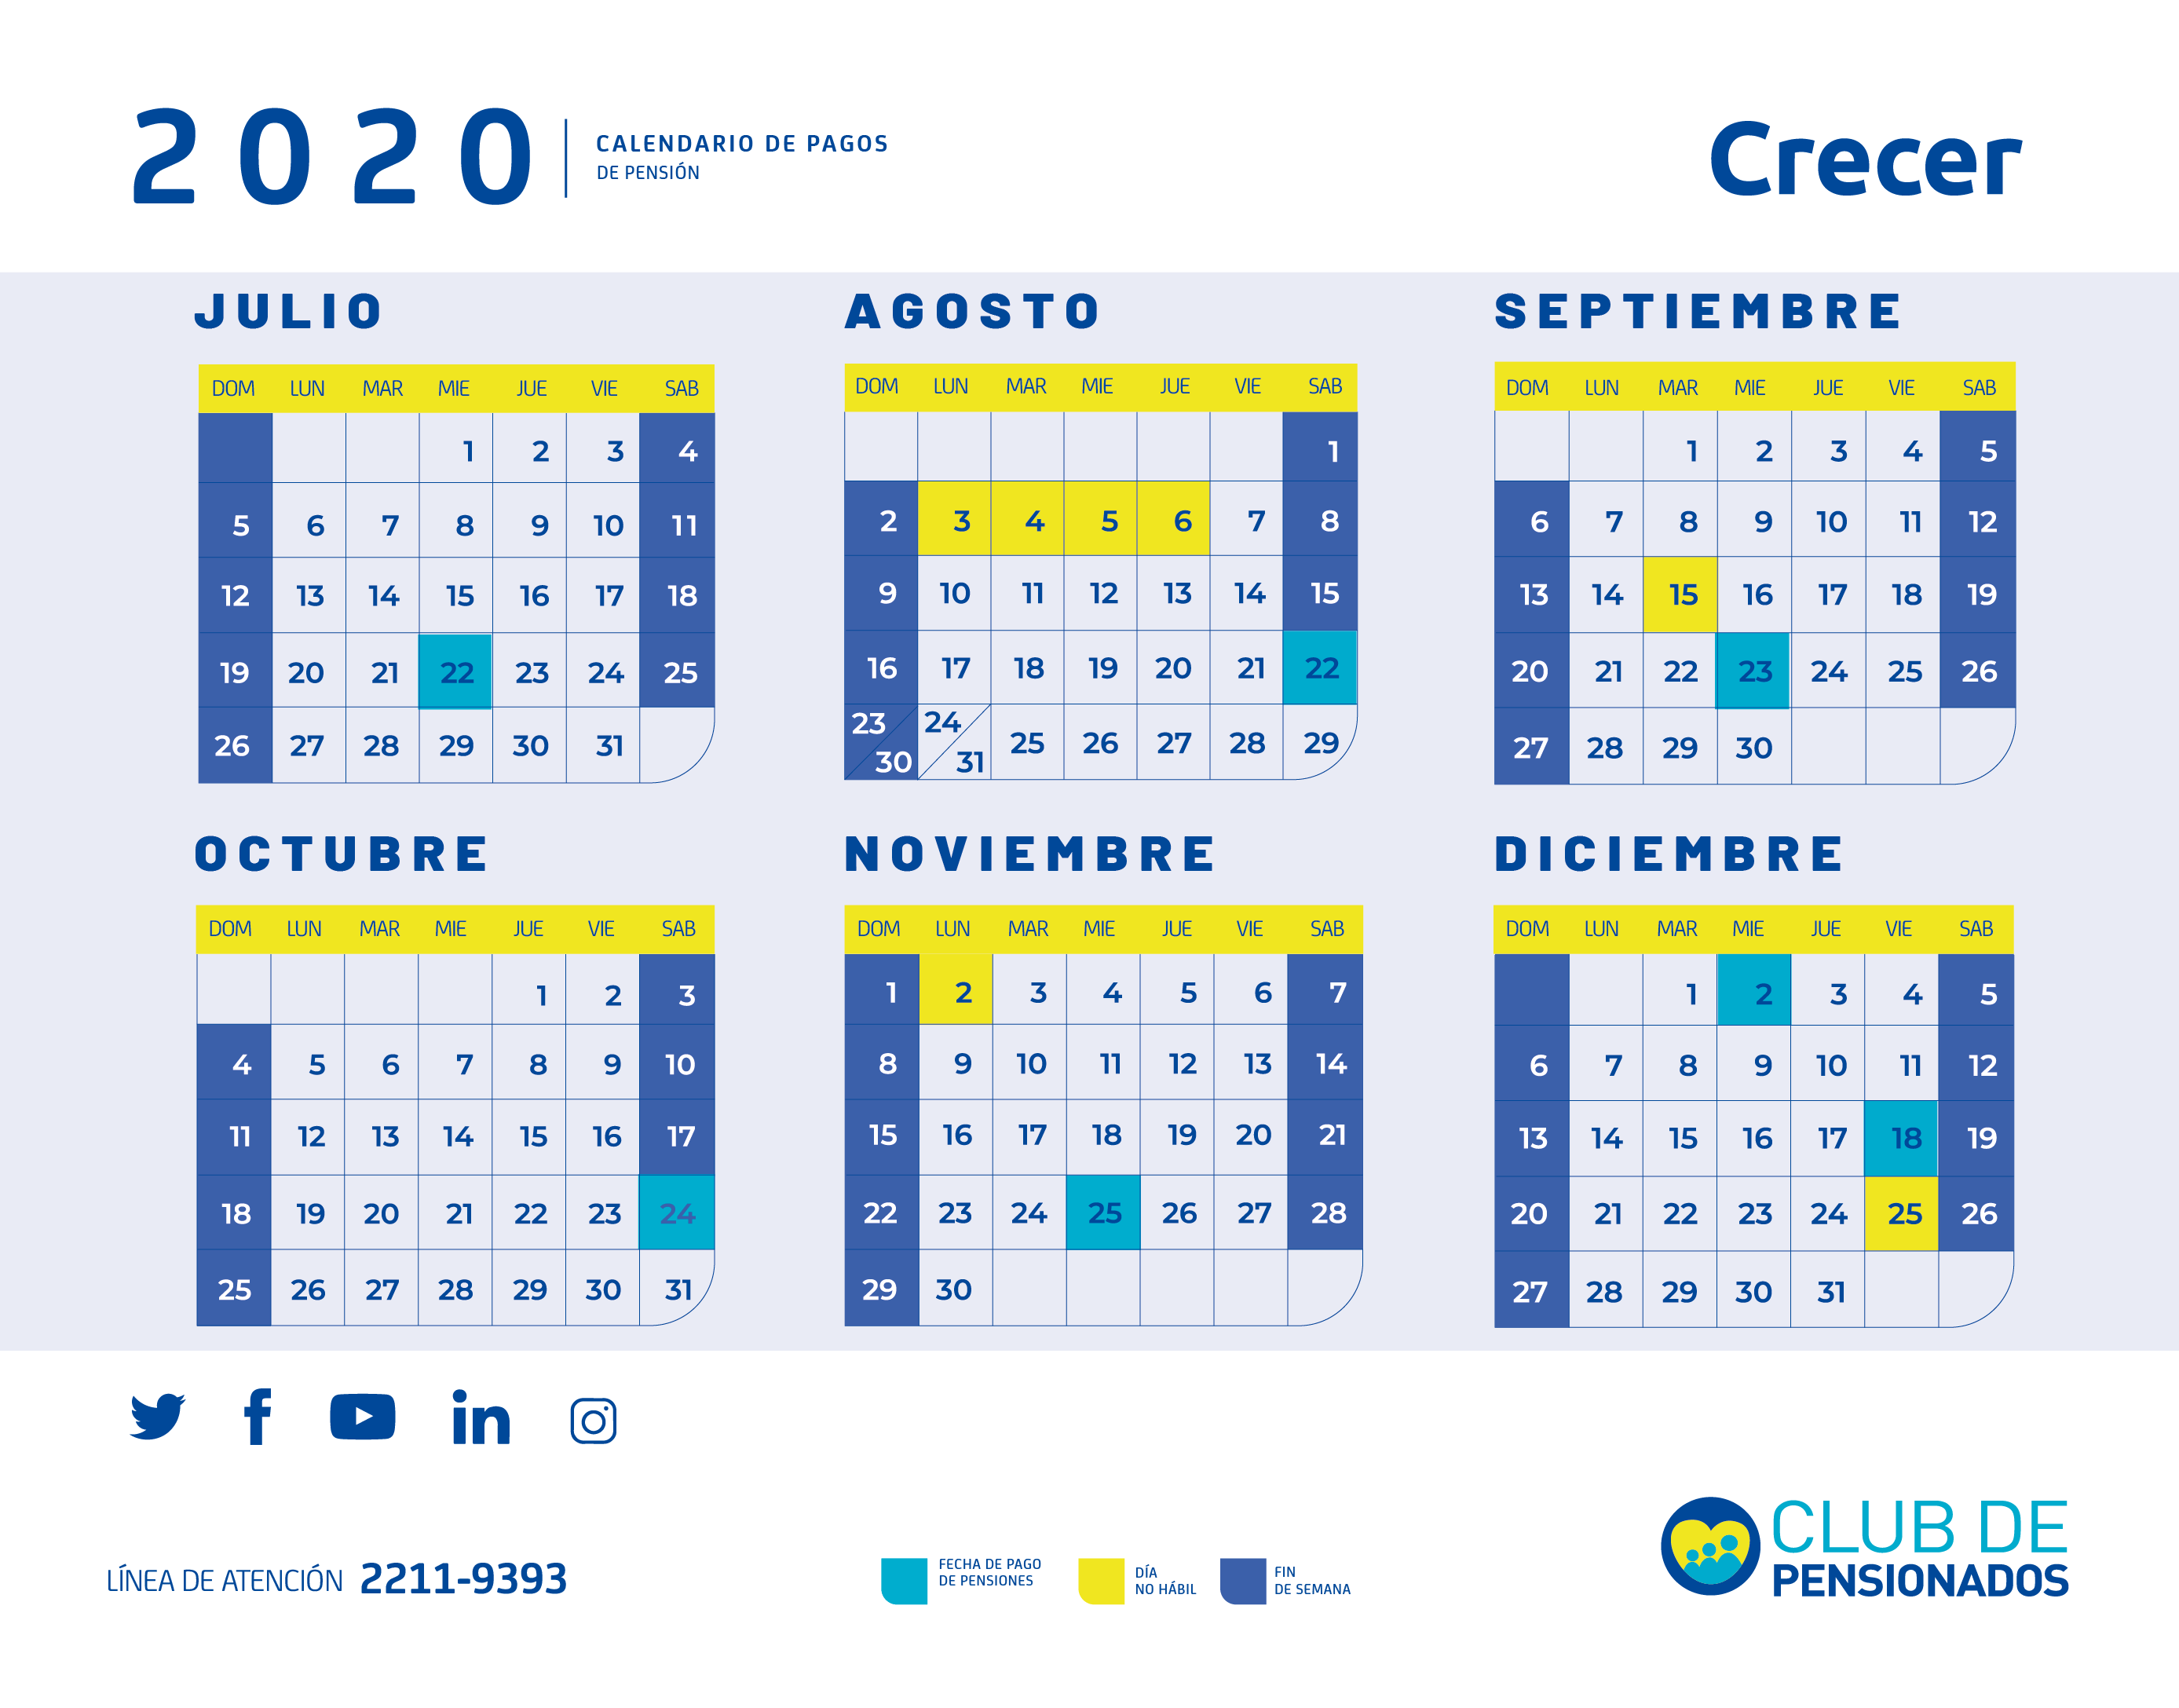 CALENDARIO PENSIONADO AFP CRECER-01